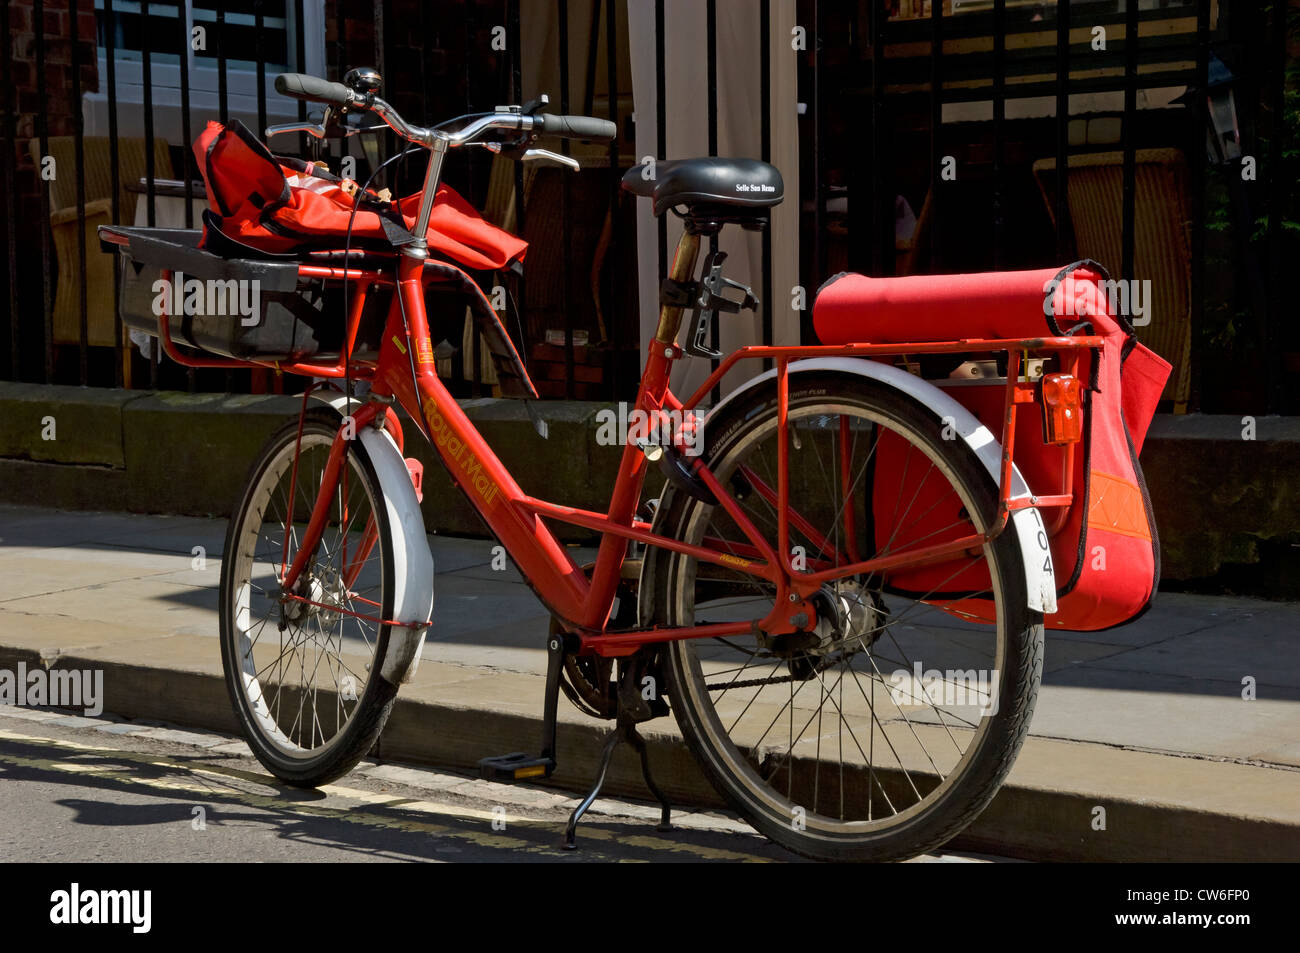 Royal Mail bike parked on the edge of the road England UK United Kingdom GB Great Britain - Stock Image